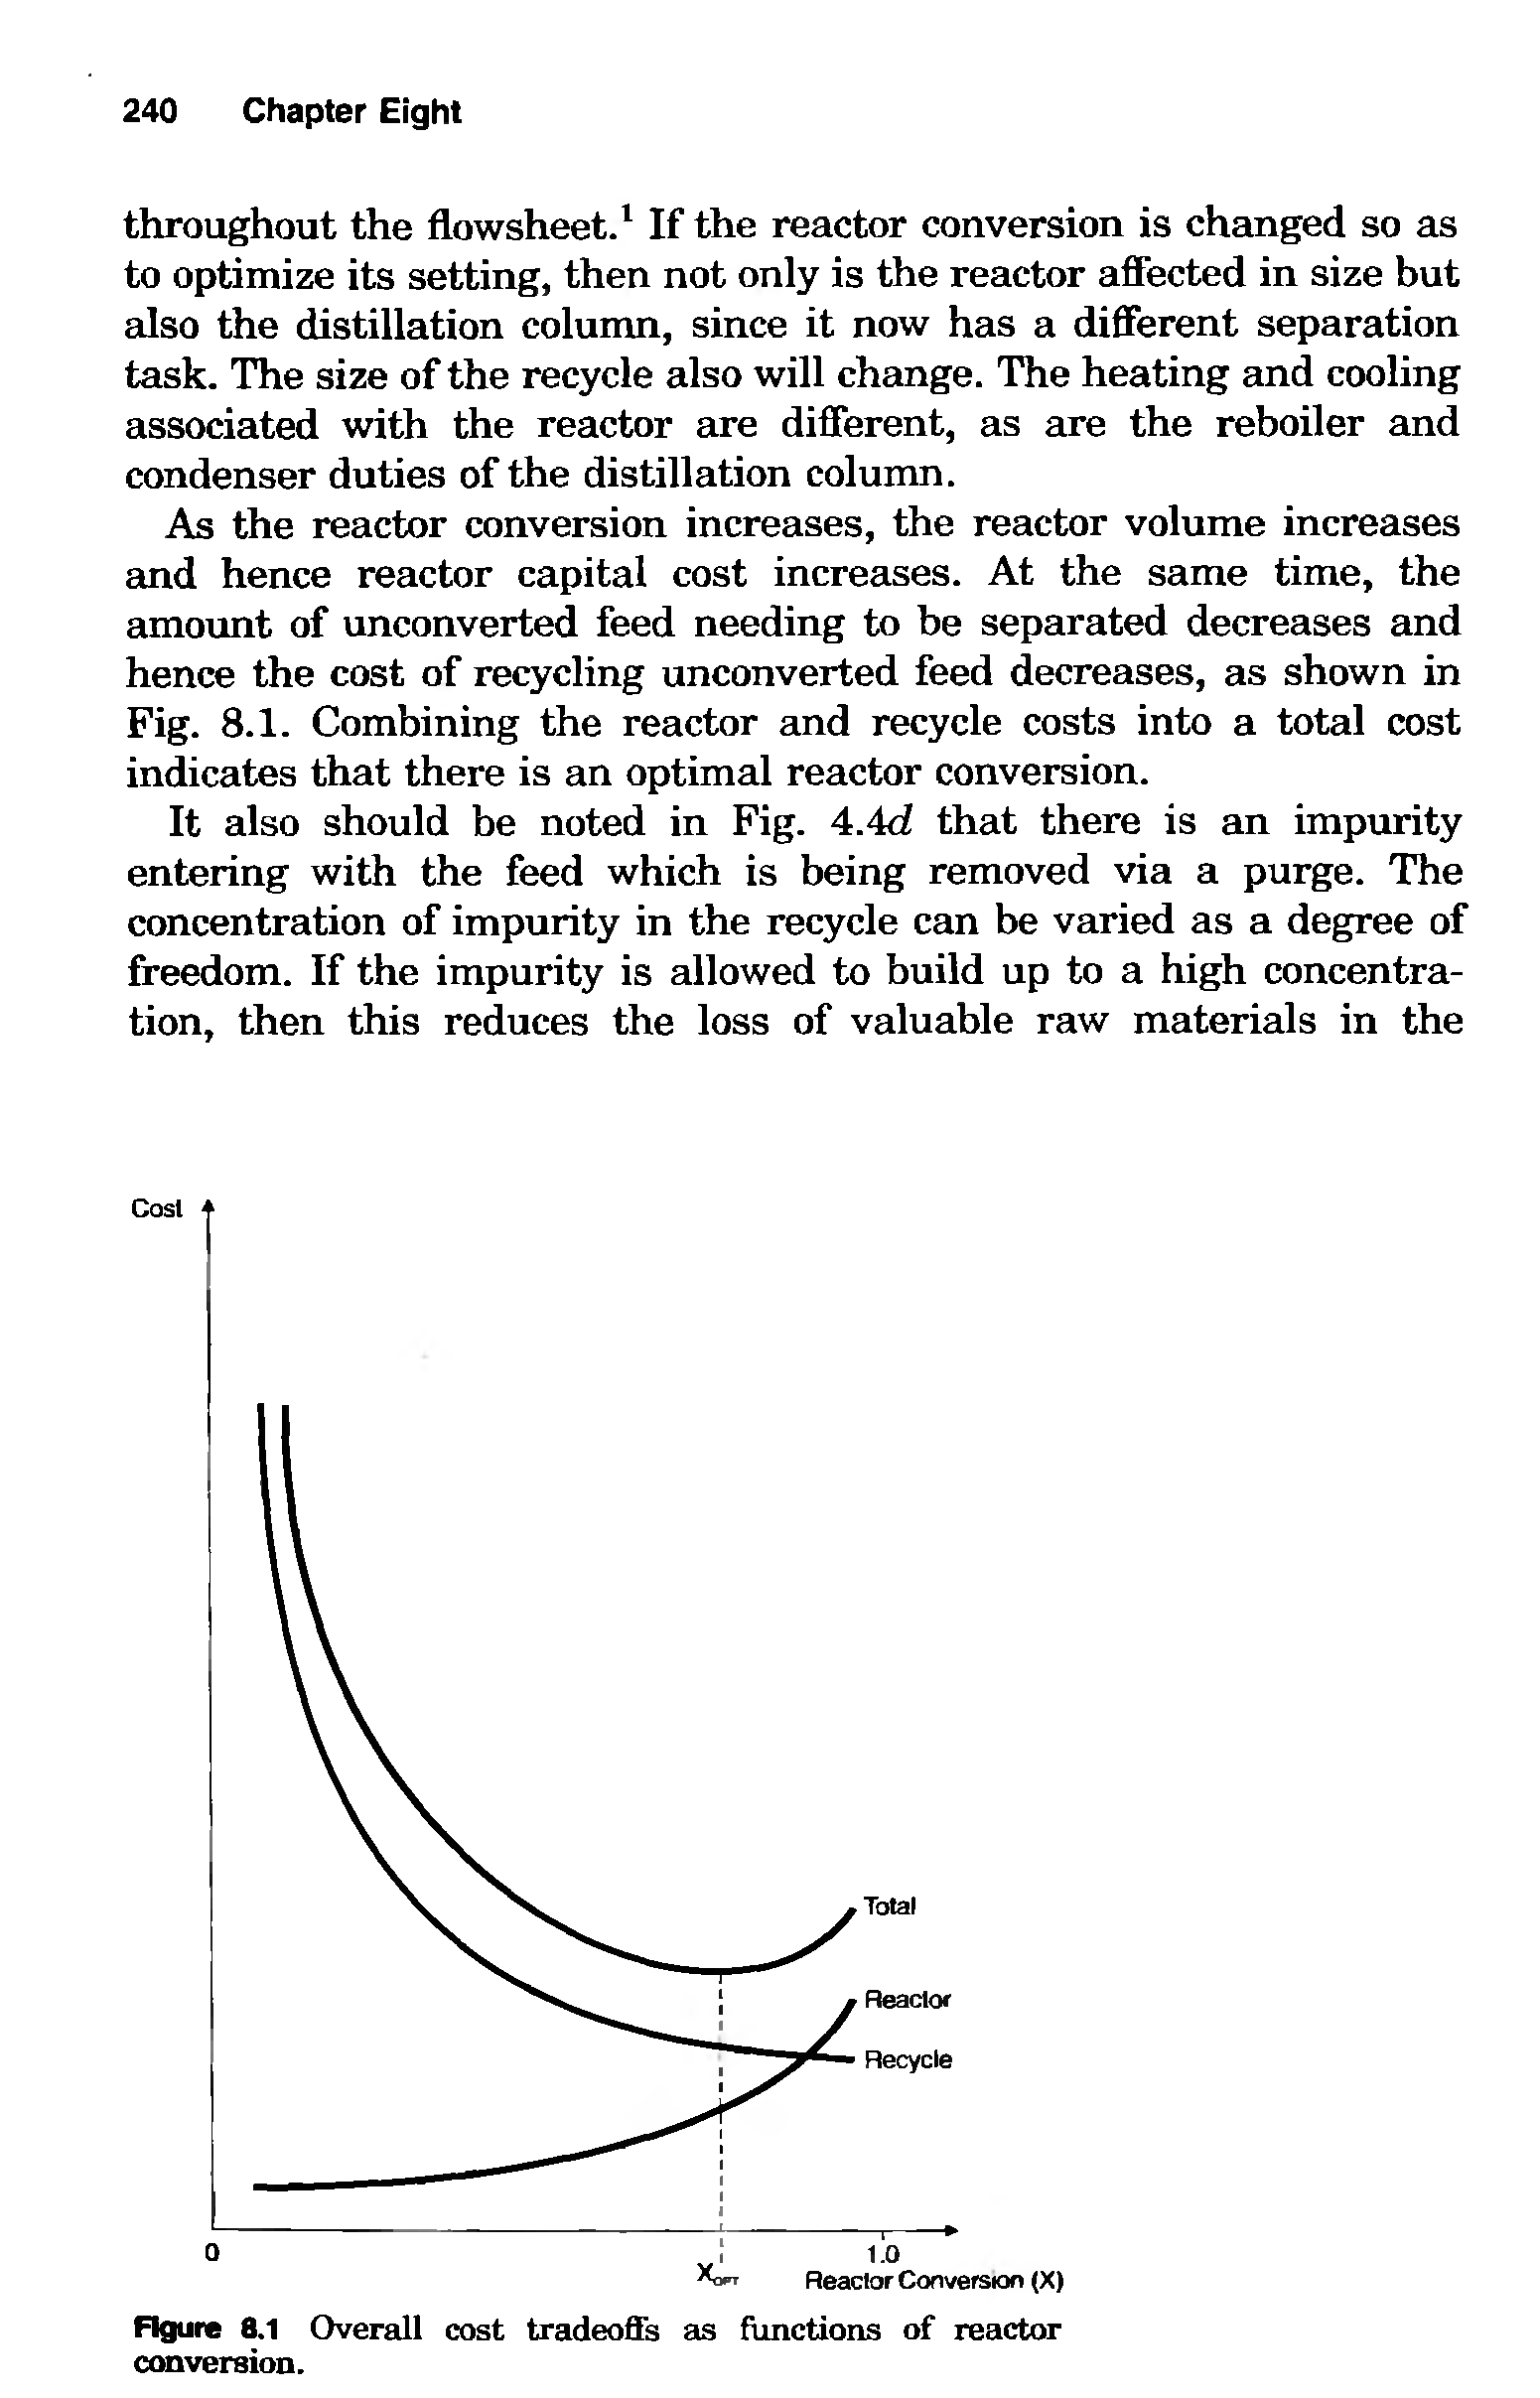 "Figure 8.1 <a href=""/info/overall_costs"">Overall cost</a> tradeoffs as functions of reactor conversion."